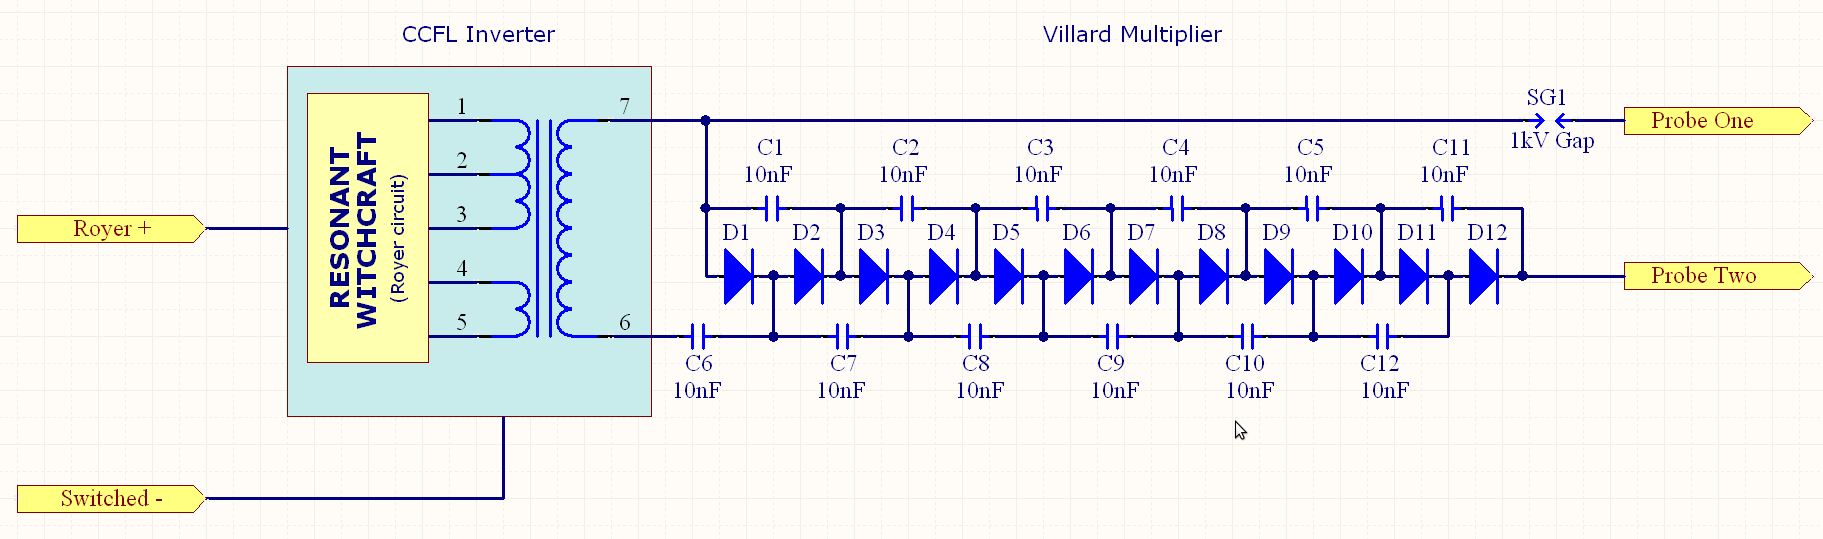 Cc3d Telemetry Wiring Diagrams Simple Guide About Diagram Controller Free Engine Image